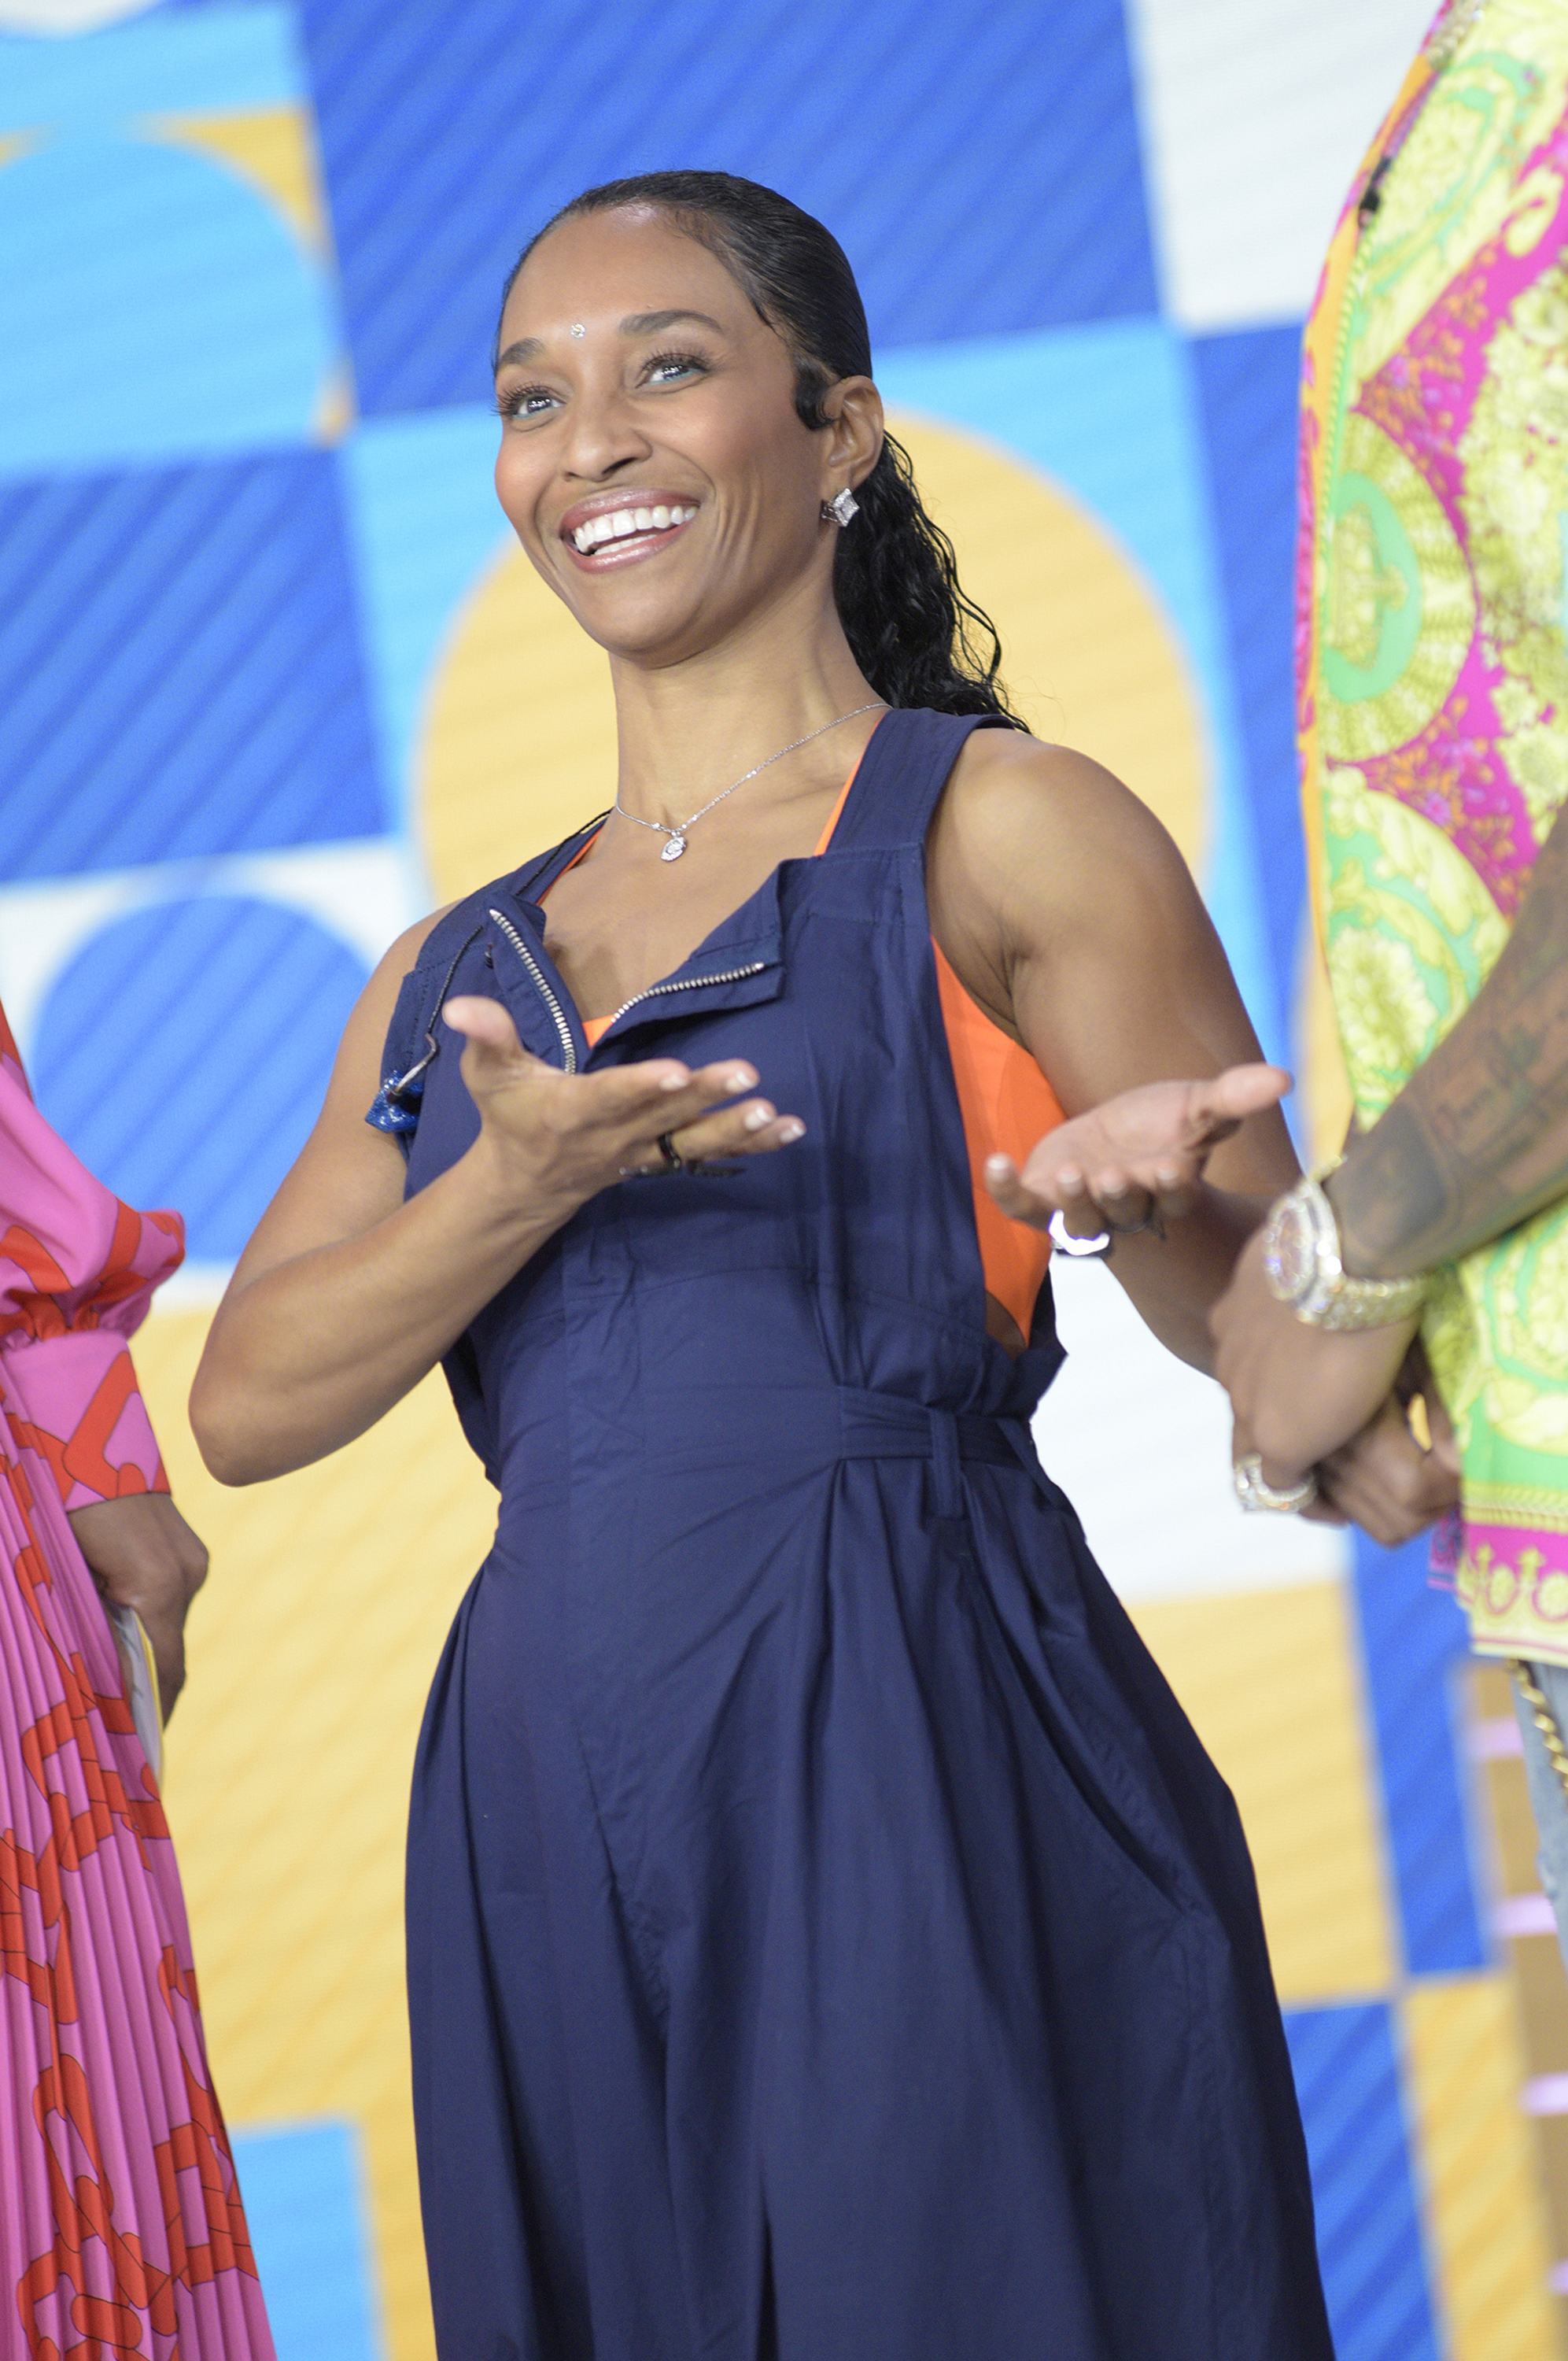 In Case You Missed It: Nelly, TLC And Flo Rida Perform On Good Morning America